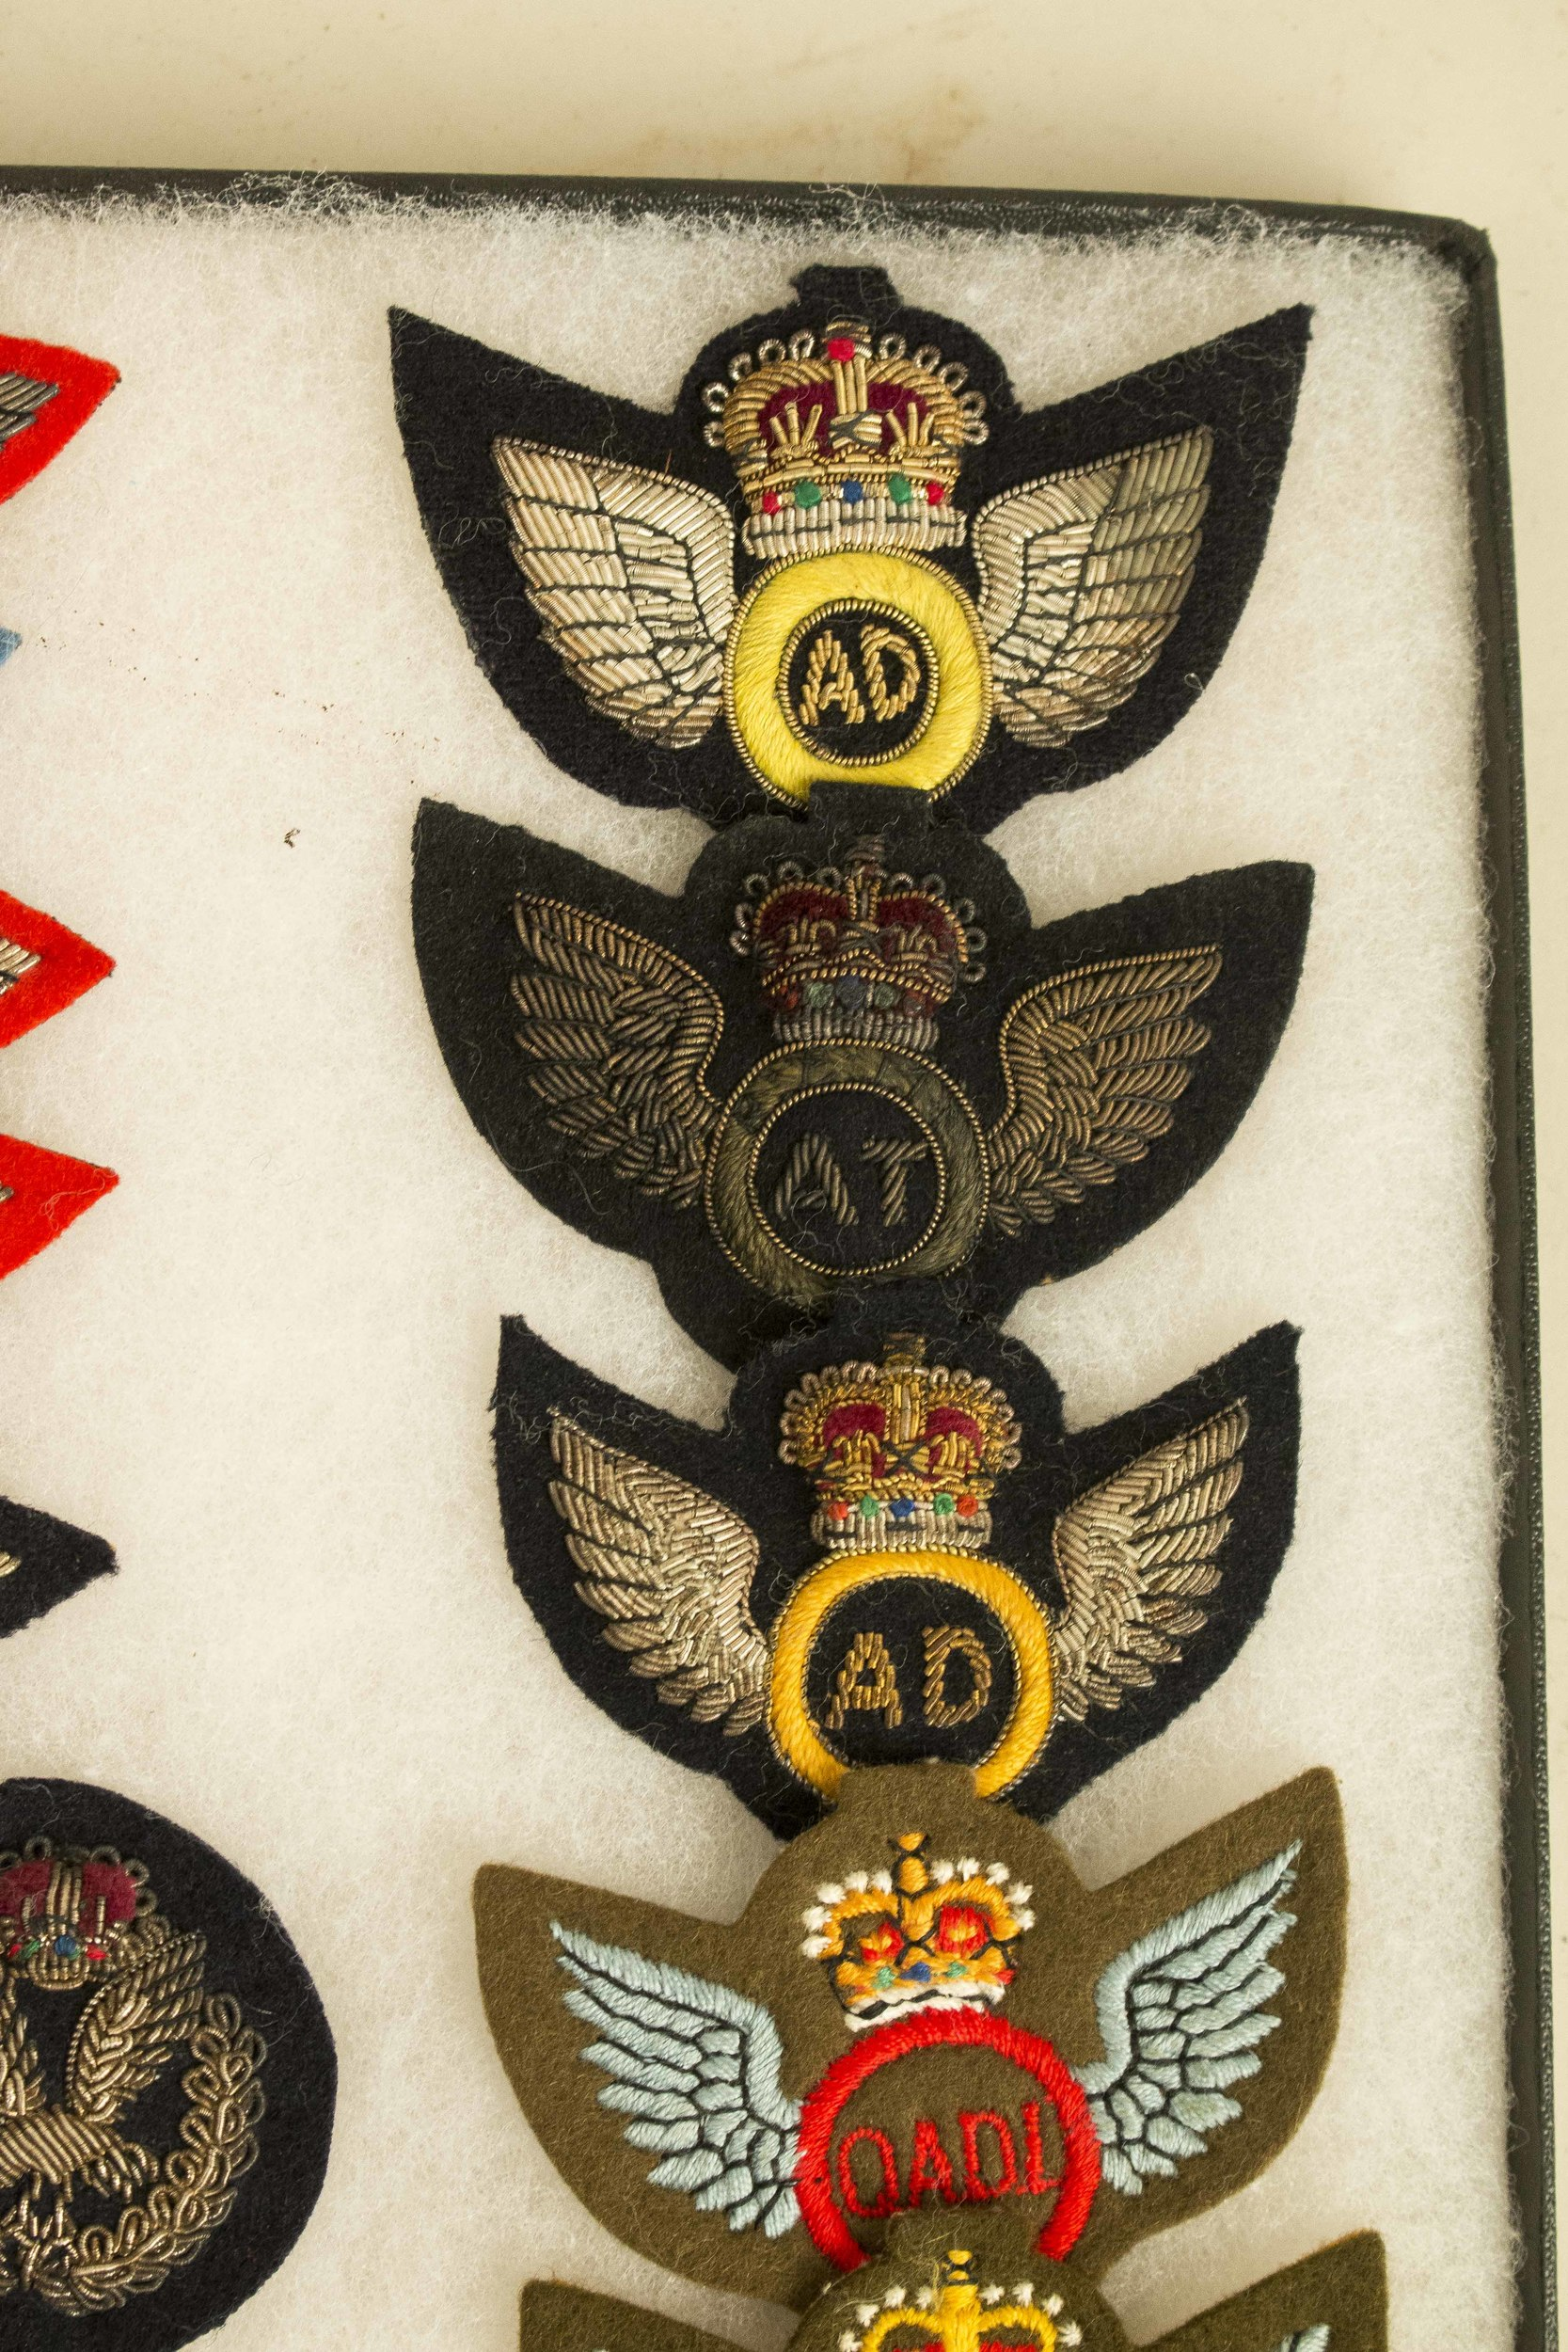 Collection of Scarce British Army Glider and Pilot Wings and Badges